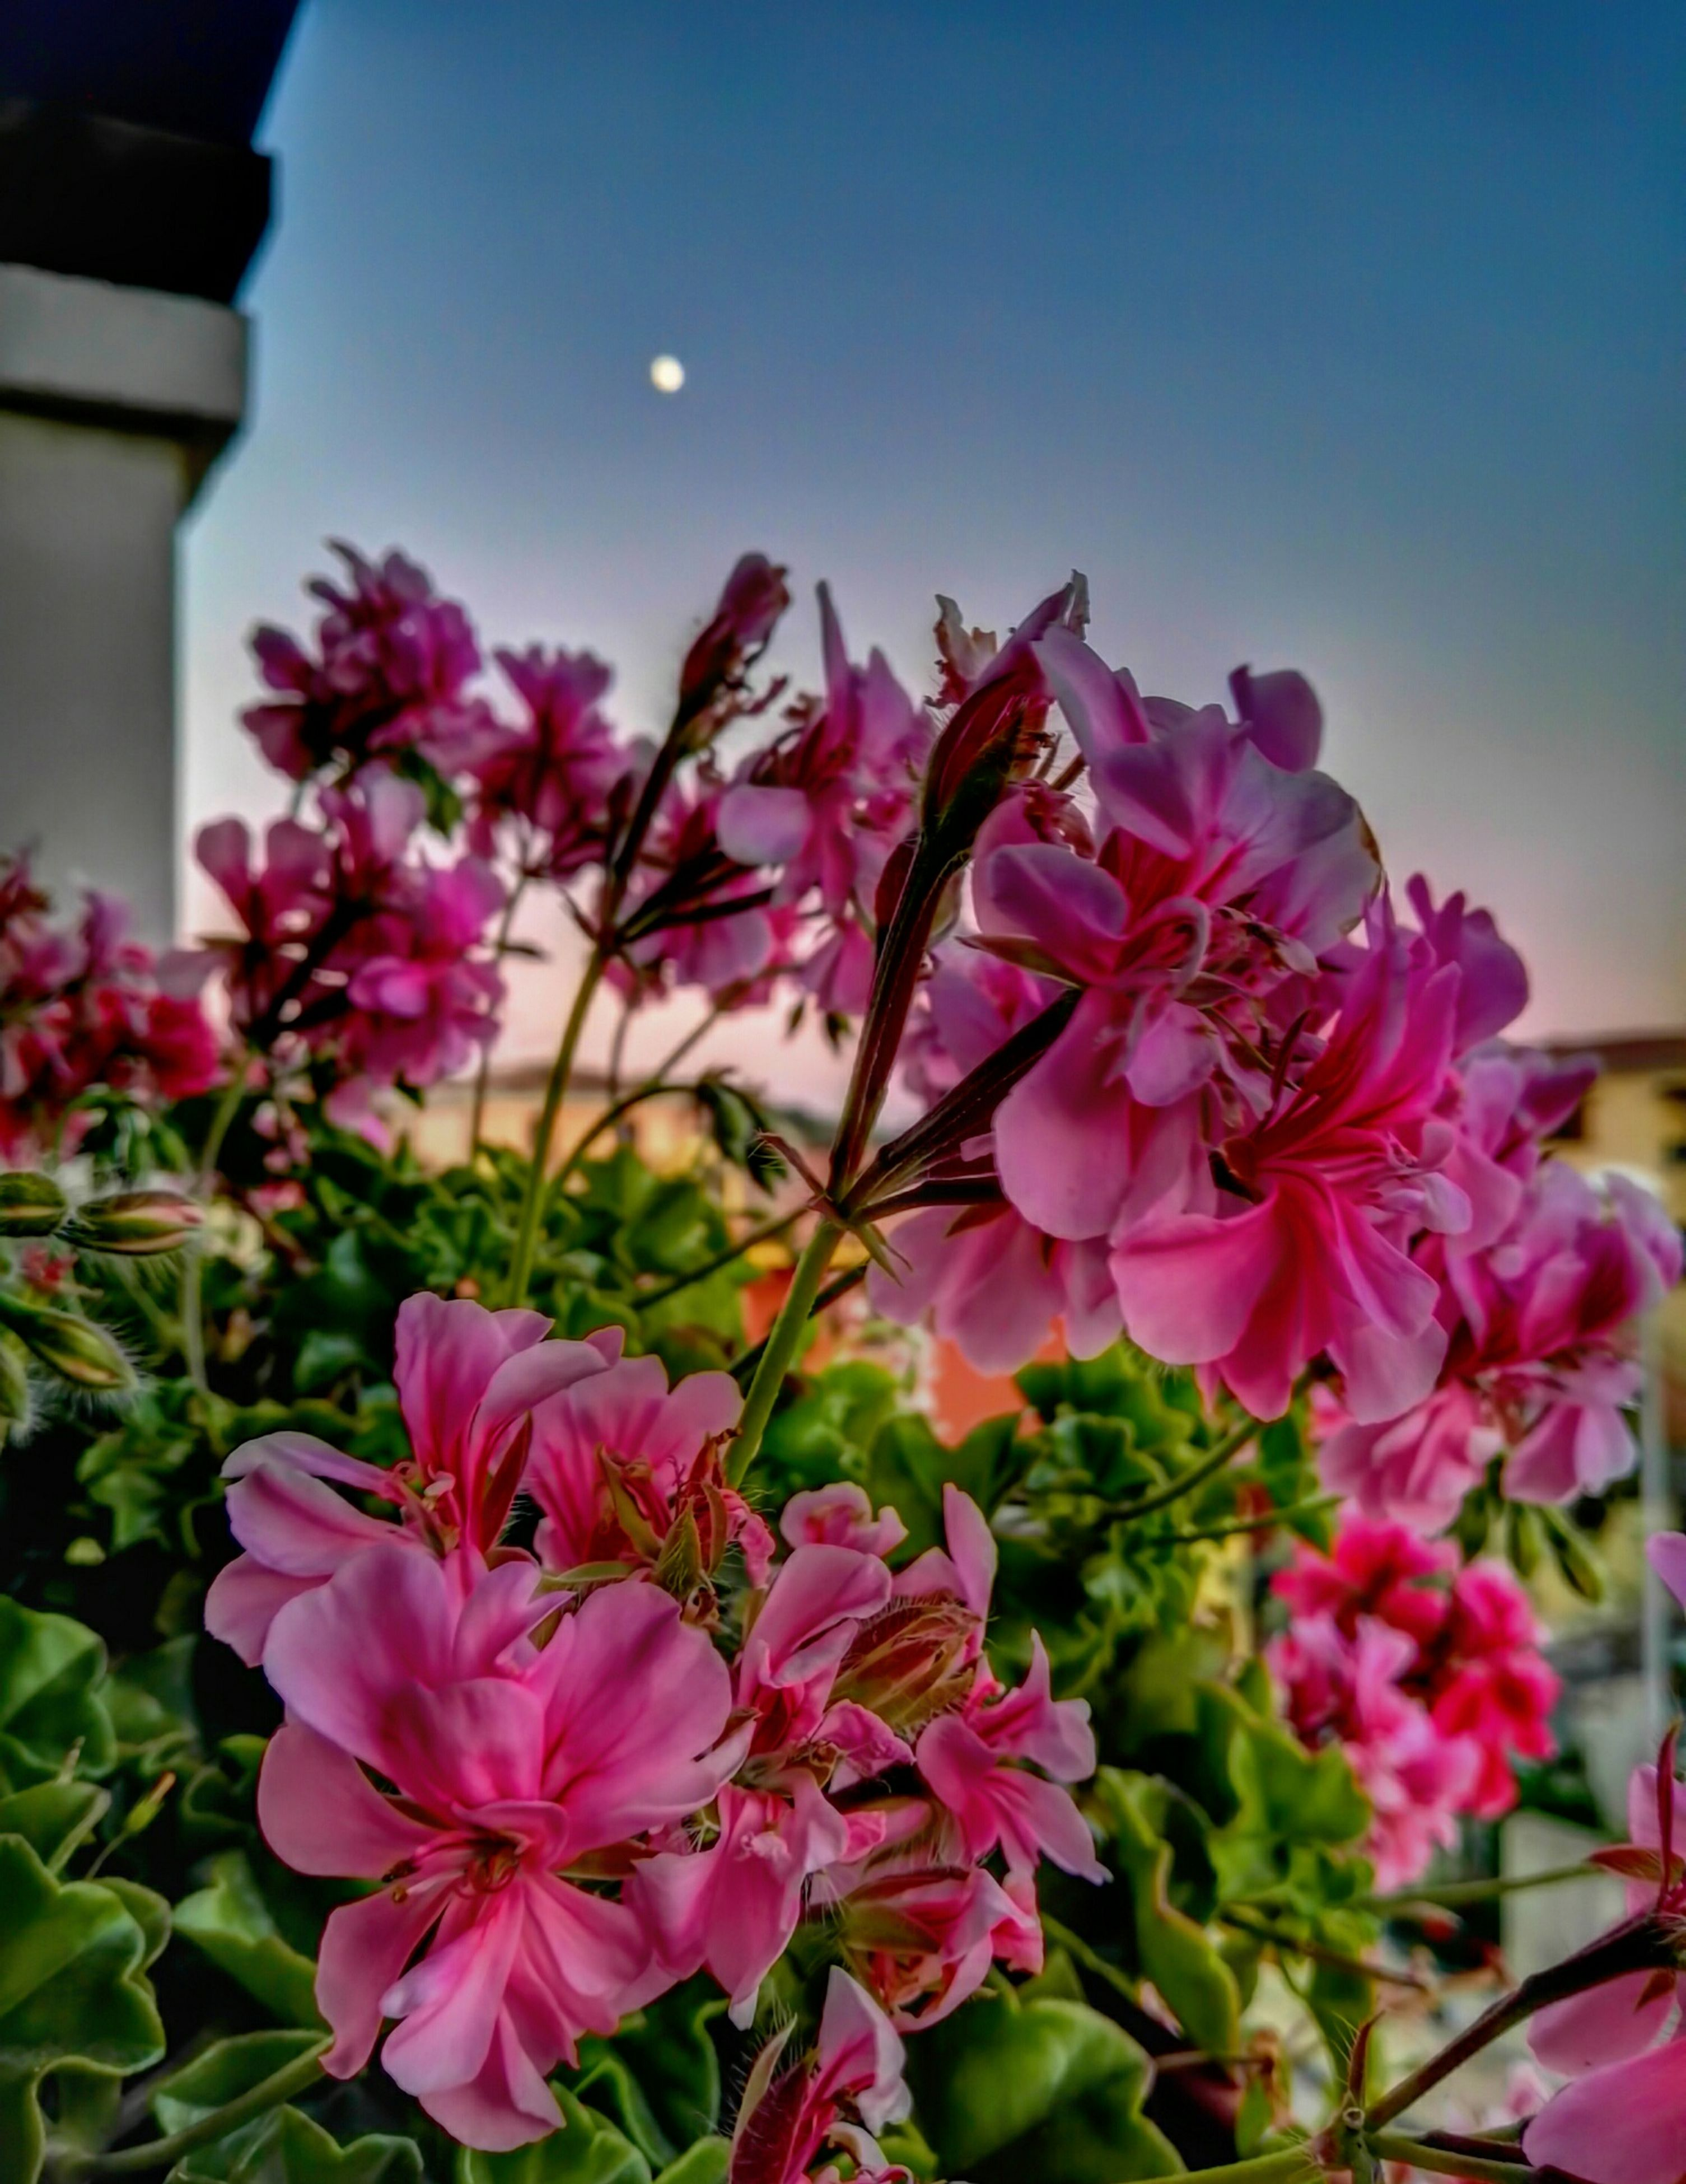 flower, pink color, nature, beauty in nature, growth, fragility, petal, no people, freshness, outdoors, clear sky, blooming, close-up, flower head, day, architecture, sky